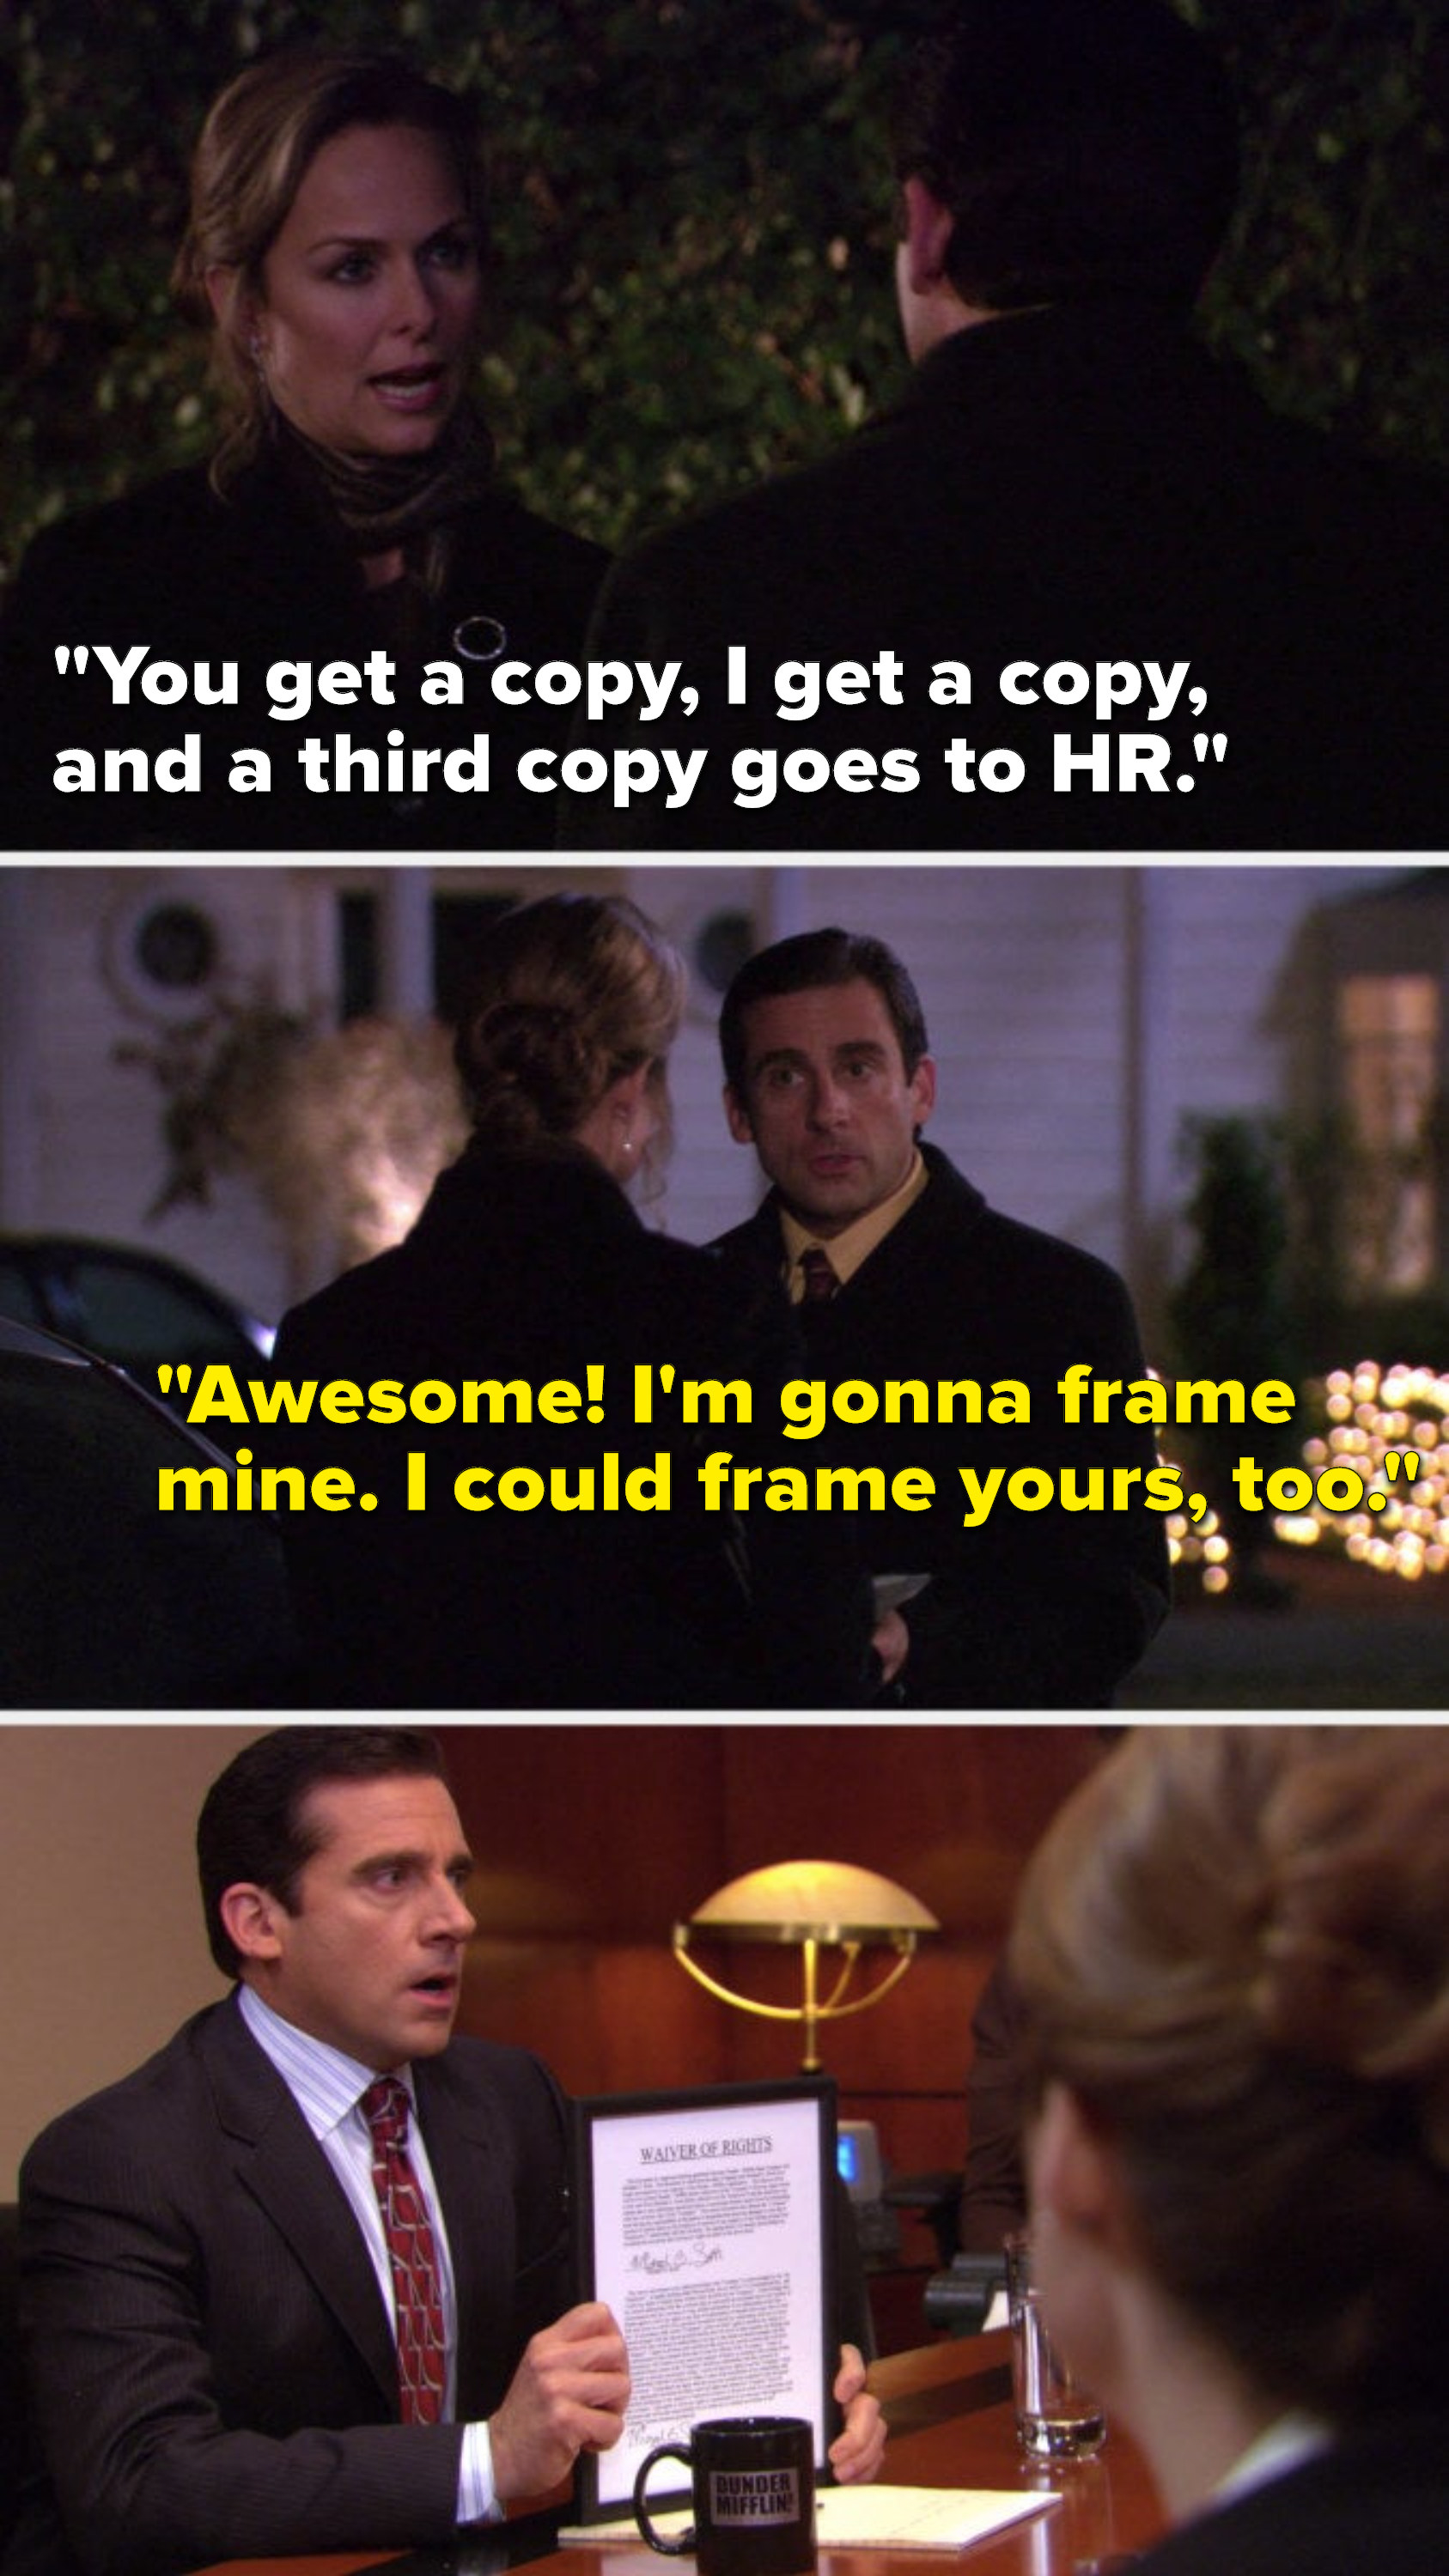 """Jan says, """"You get a copy, I get a copy, and a third copy goes to HR,"""" Michael says, """"Awesome, I'm gonna frame mine, I could frame yours, too"""" and later we see Michael's framed contract"""